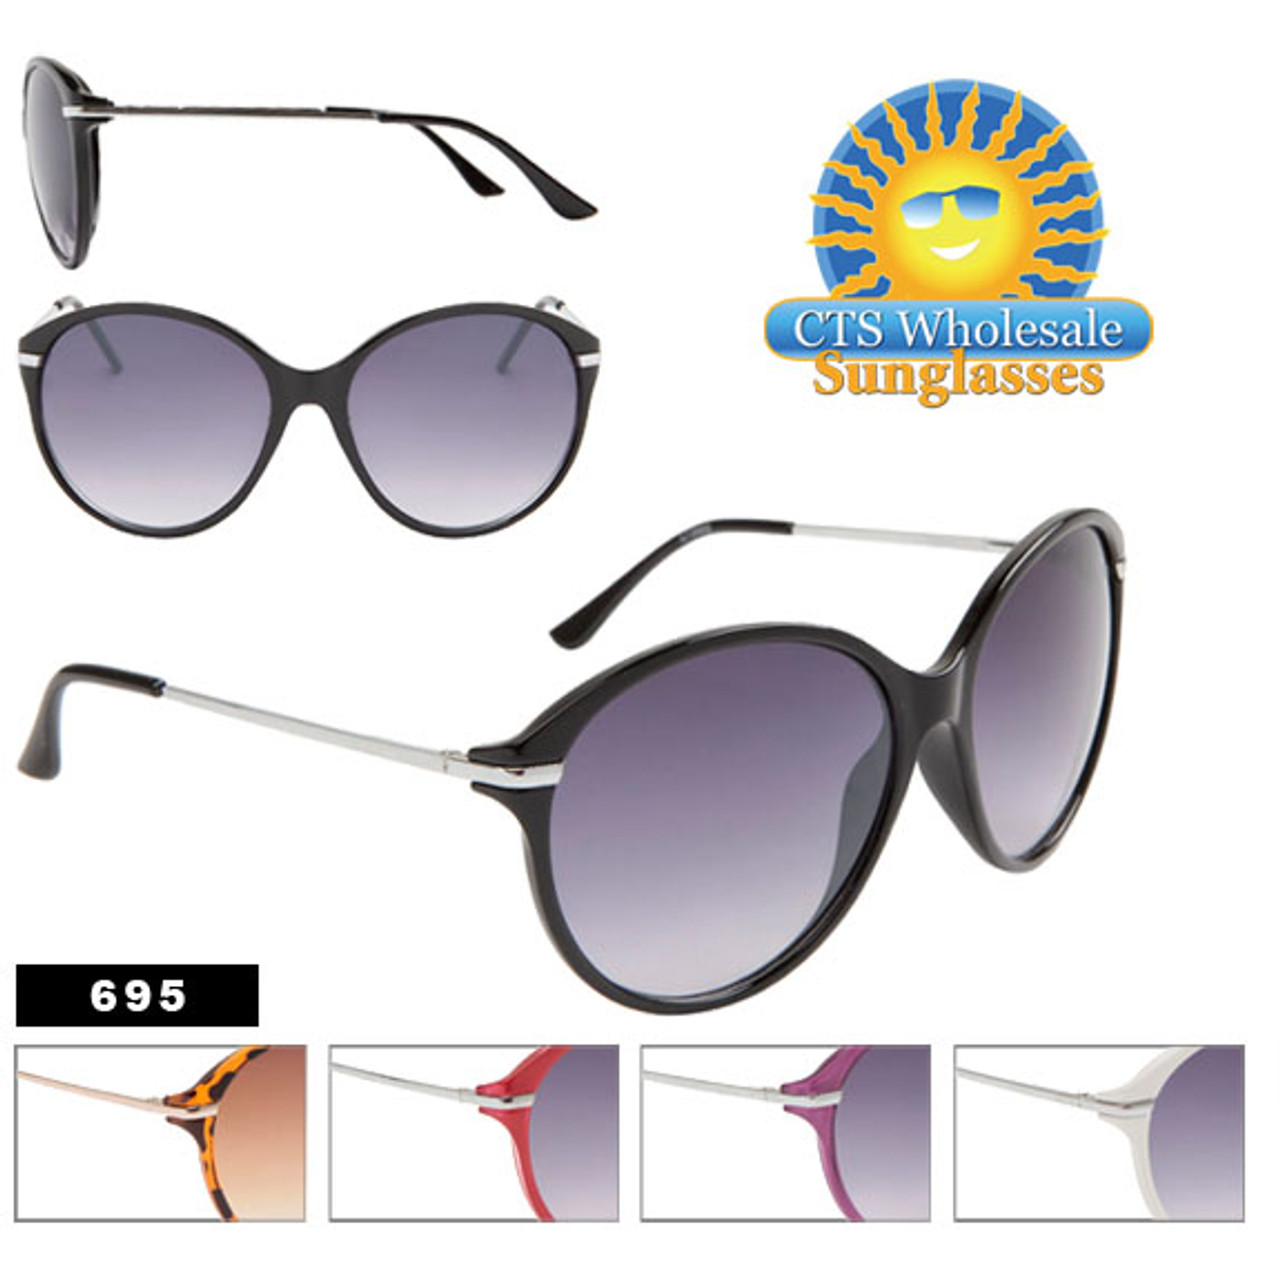 Classic Fashion Sunglasses 695